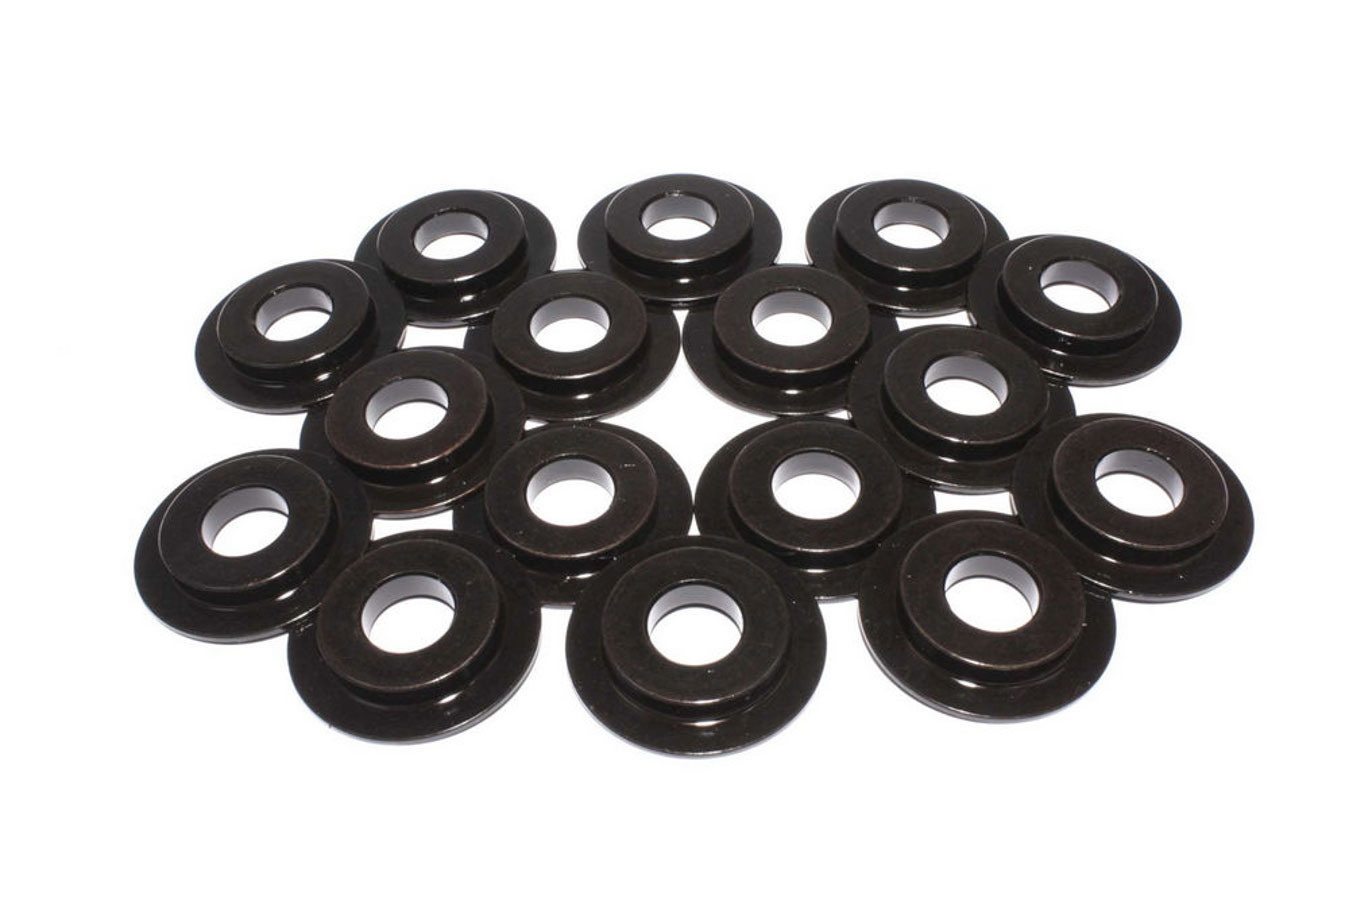 Comp Cams 4711-16 Valve Spring Locator, Inside, 0.060 in Thick, 1.590 in OD, 0.570 in ID, 1.130 in Spring ID, Steel, Set of 16